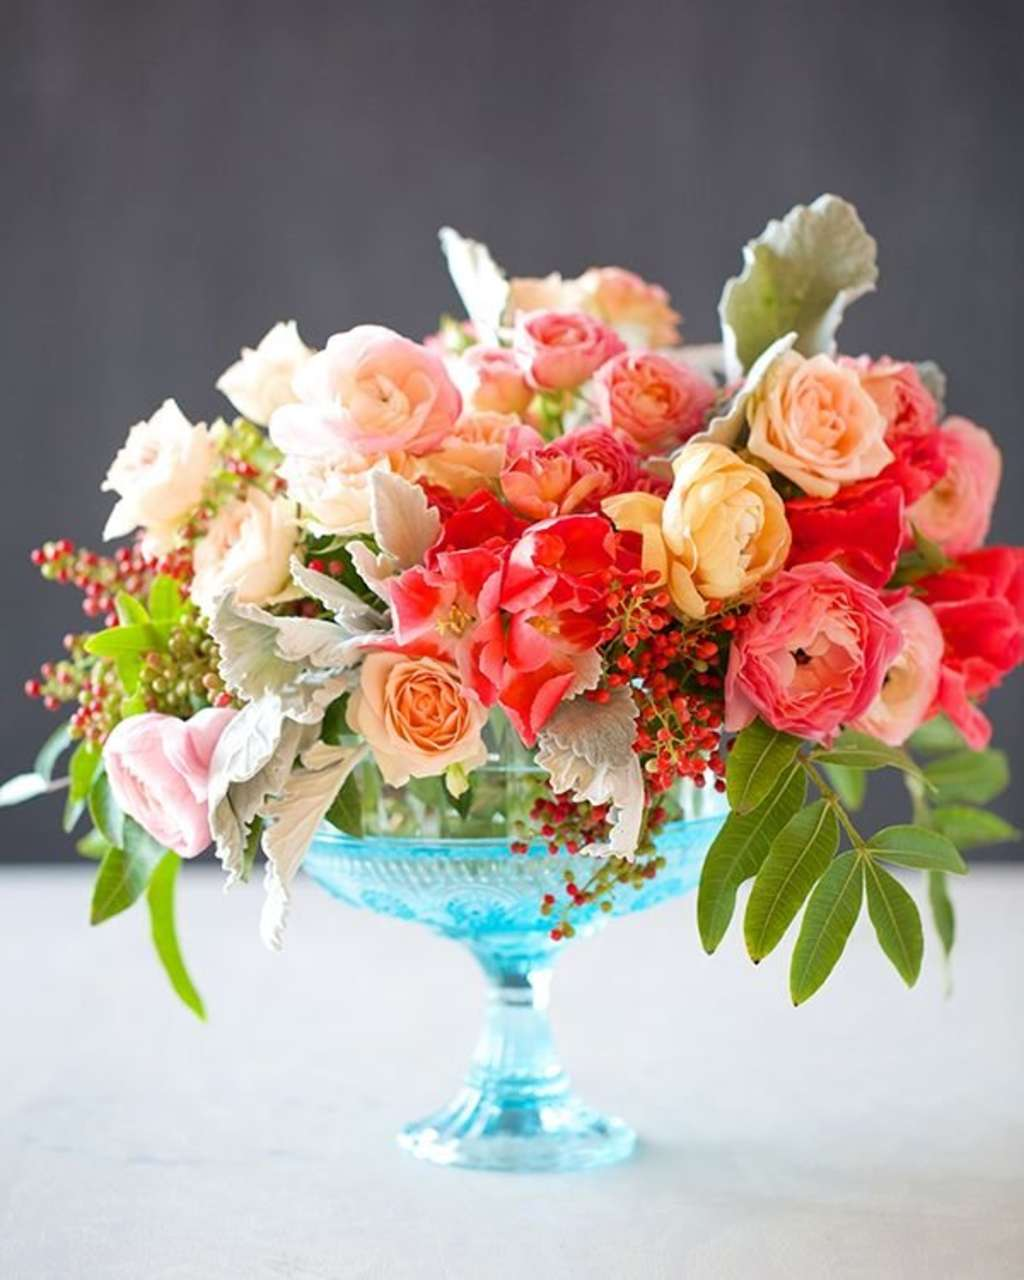 15 Diy Wedding Centerpieces That Dont Look Homemade Kitchn